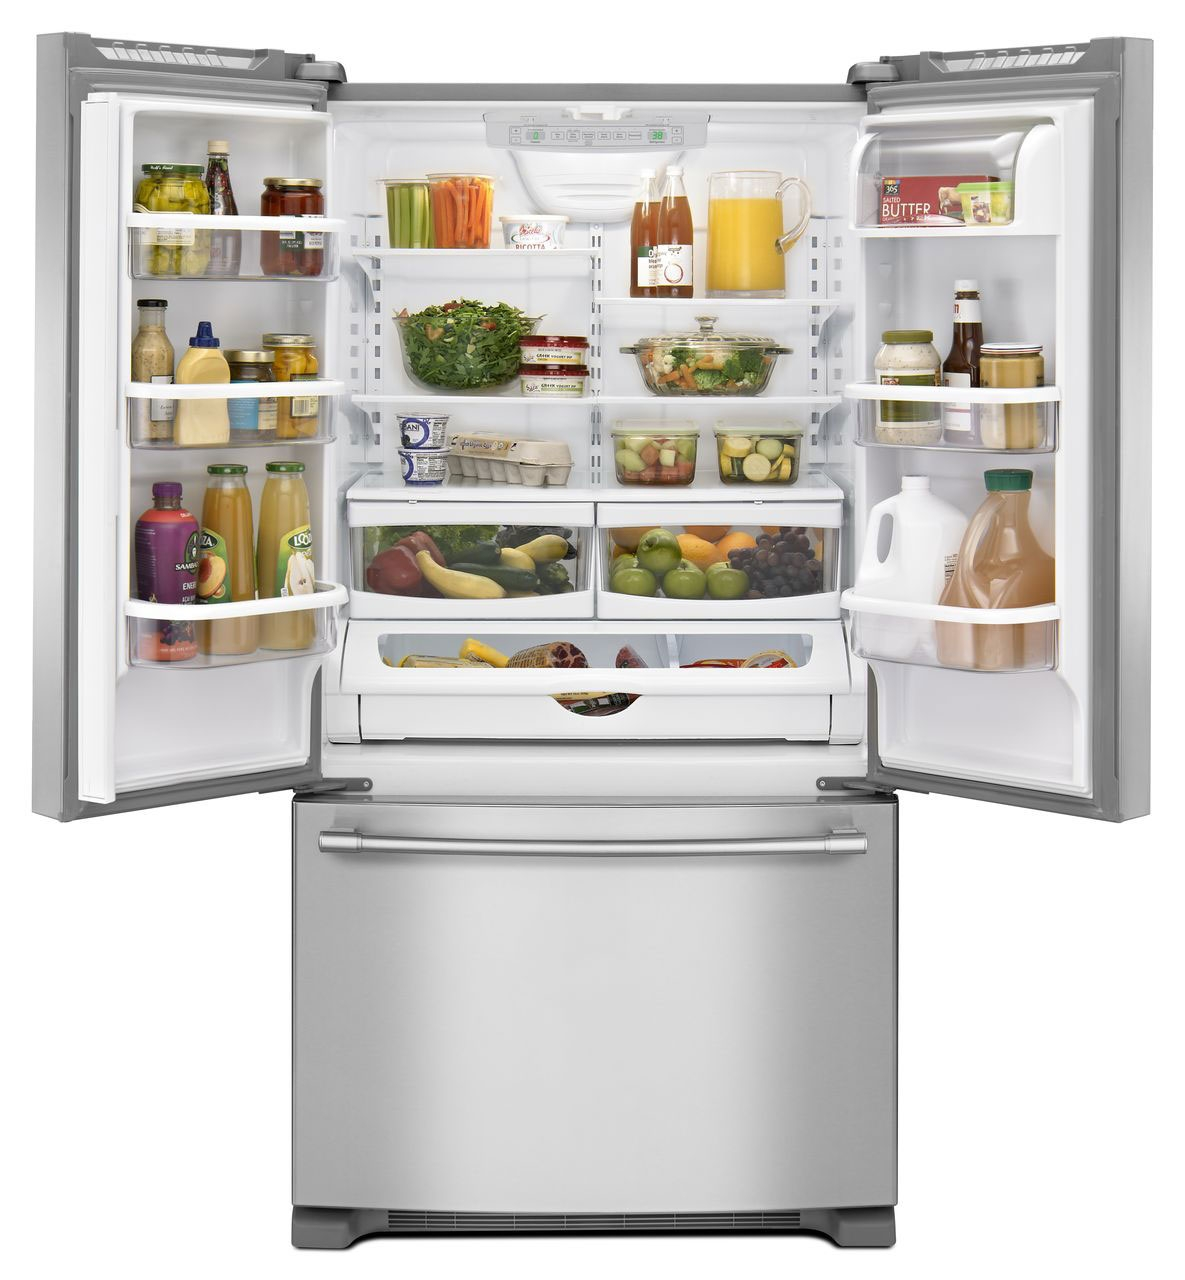 Maytag Stainless French Door Refrigerator - MFC2062FEZ